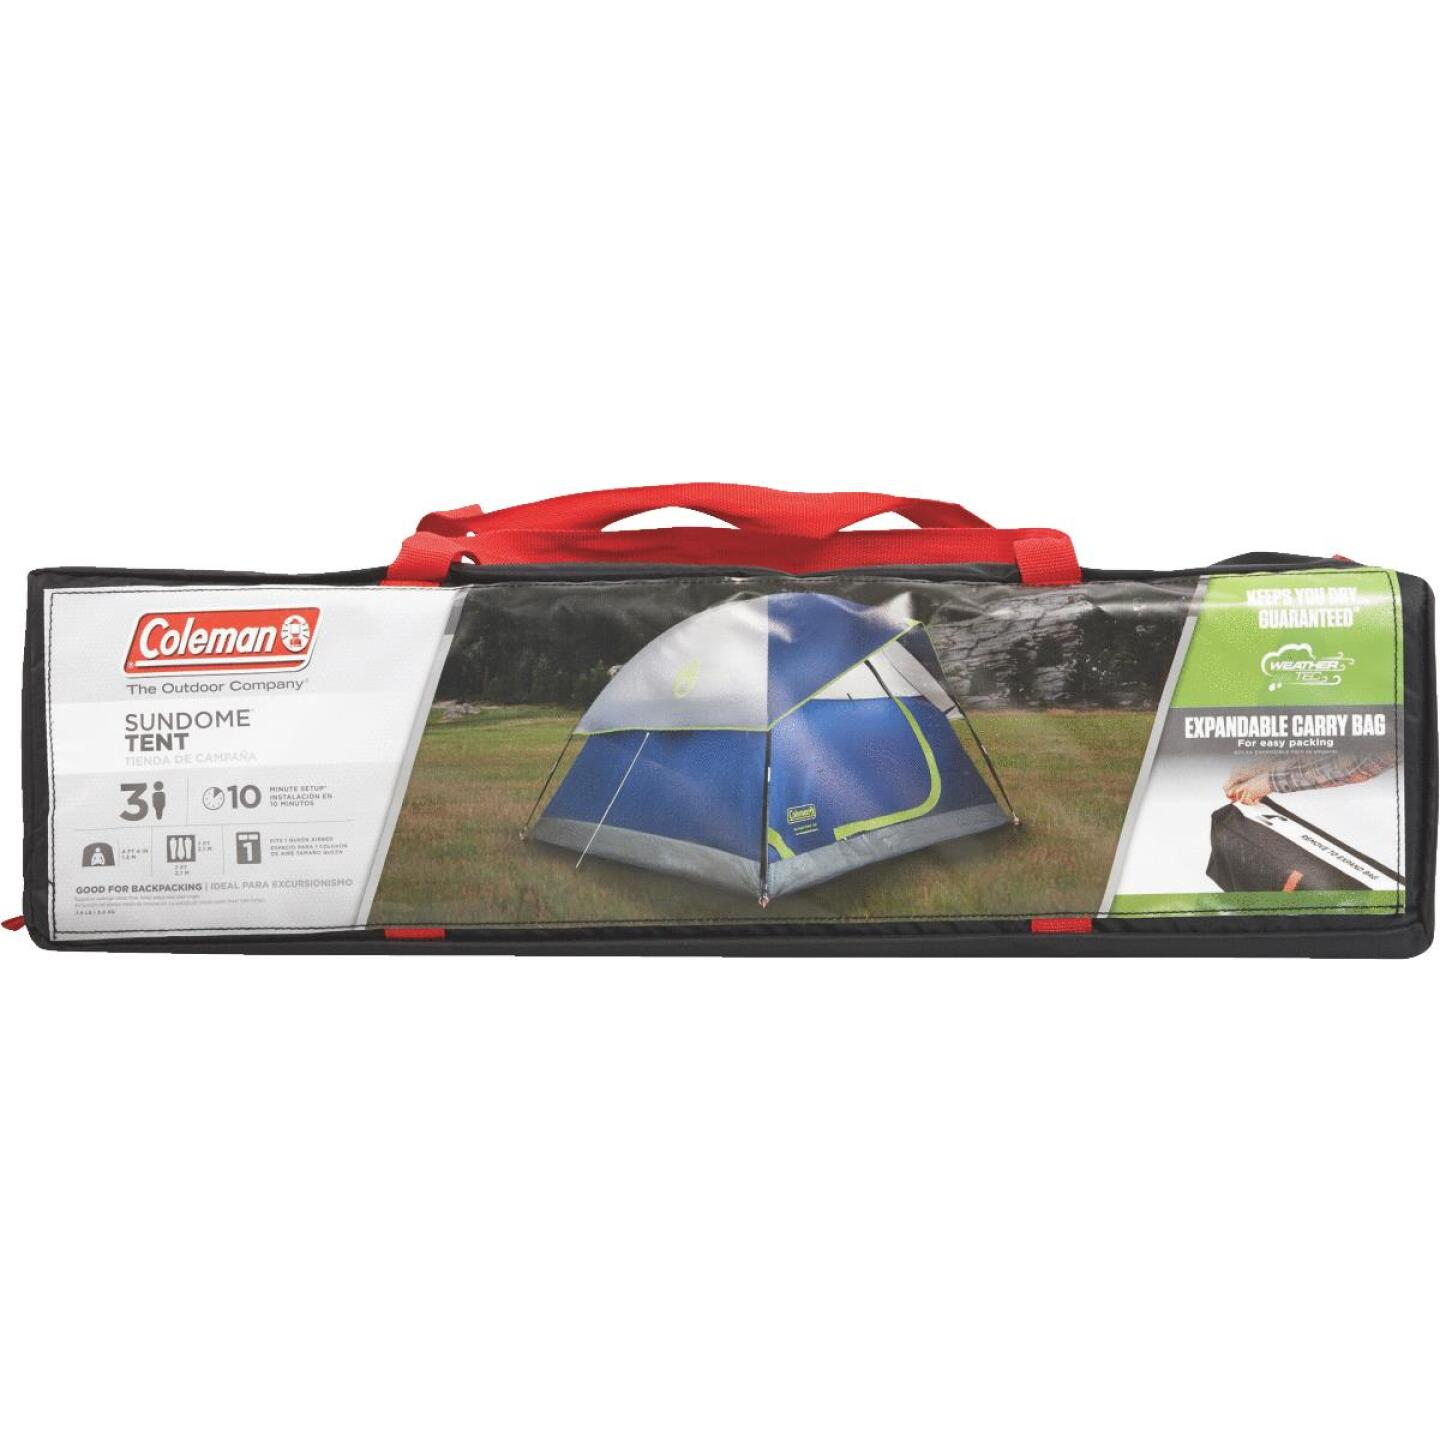 Coleman 3-Person 7 Ft. W. x 7 Ft. L. Dome Tent Image 2